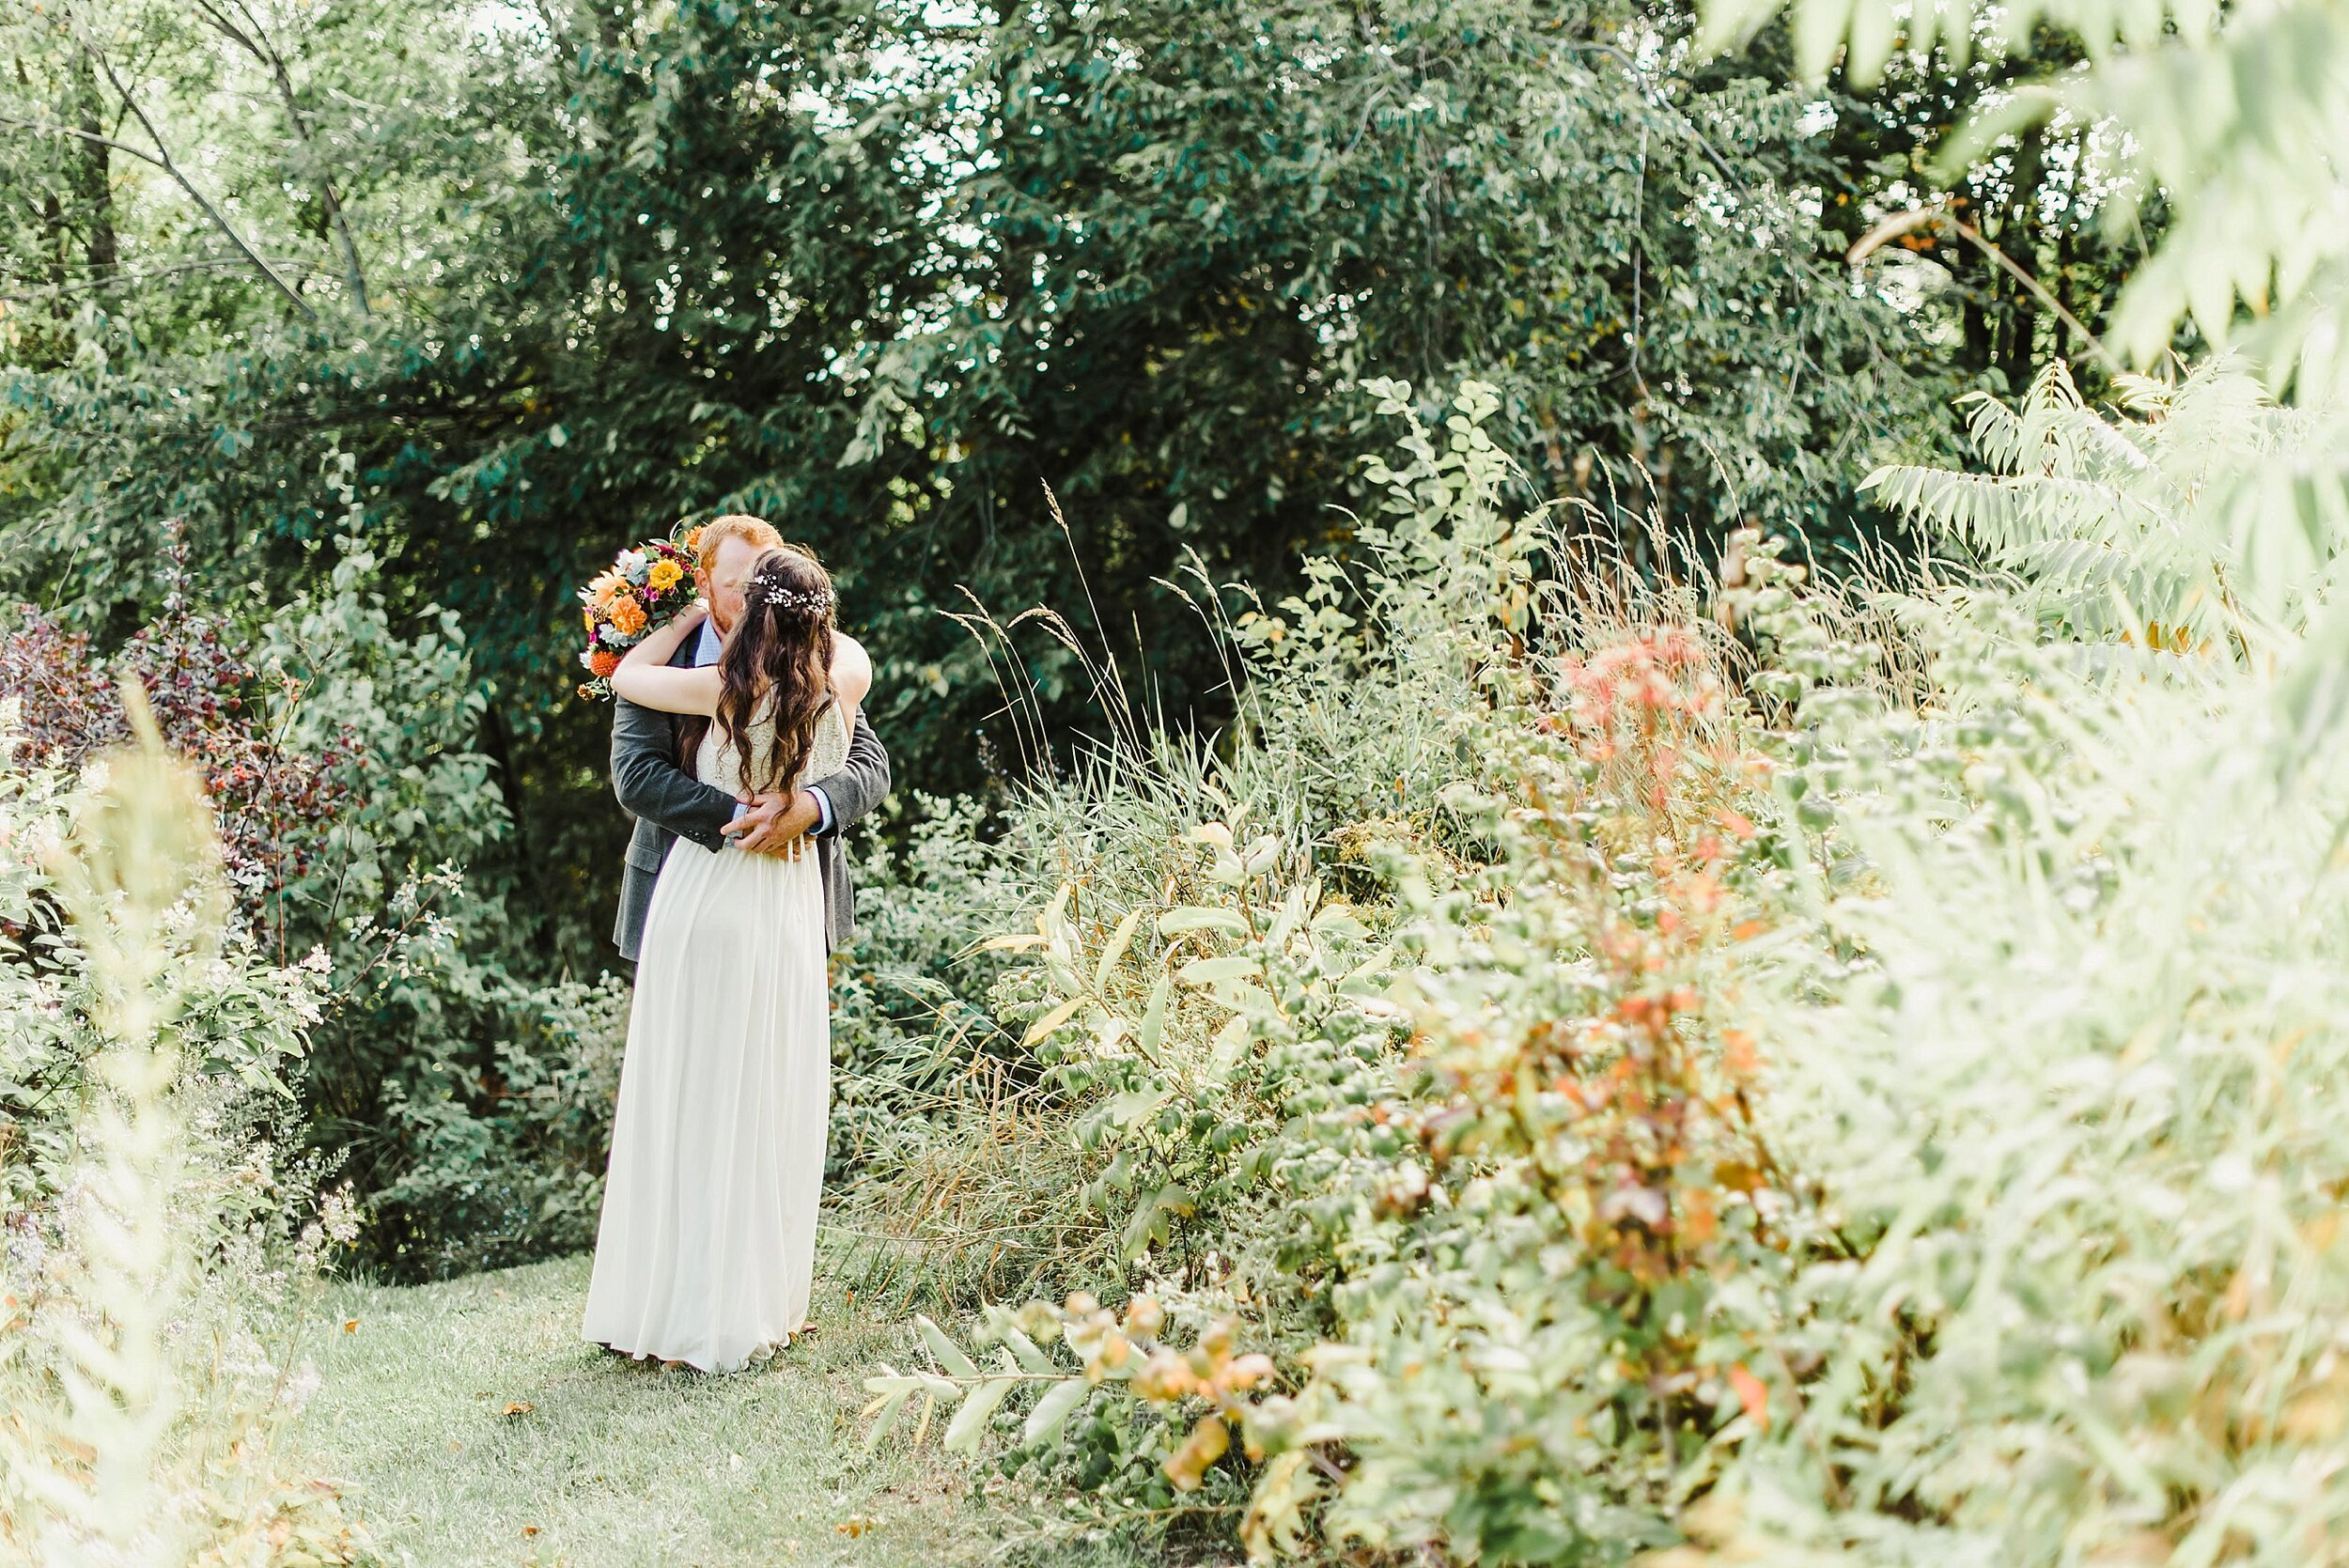 light airy indie fine art ottawa wedding photographer | Ali and Batoul Photography_1238.jpg